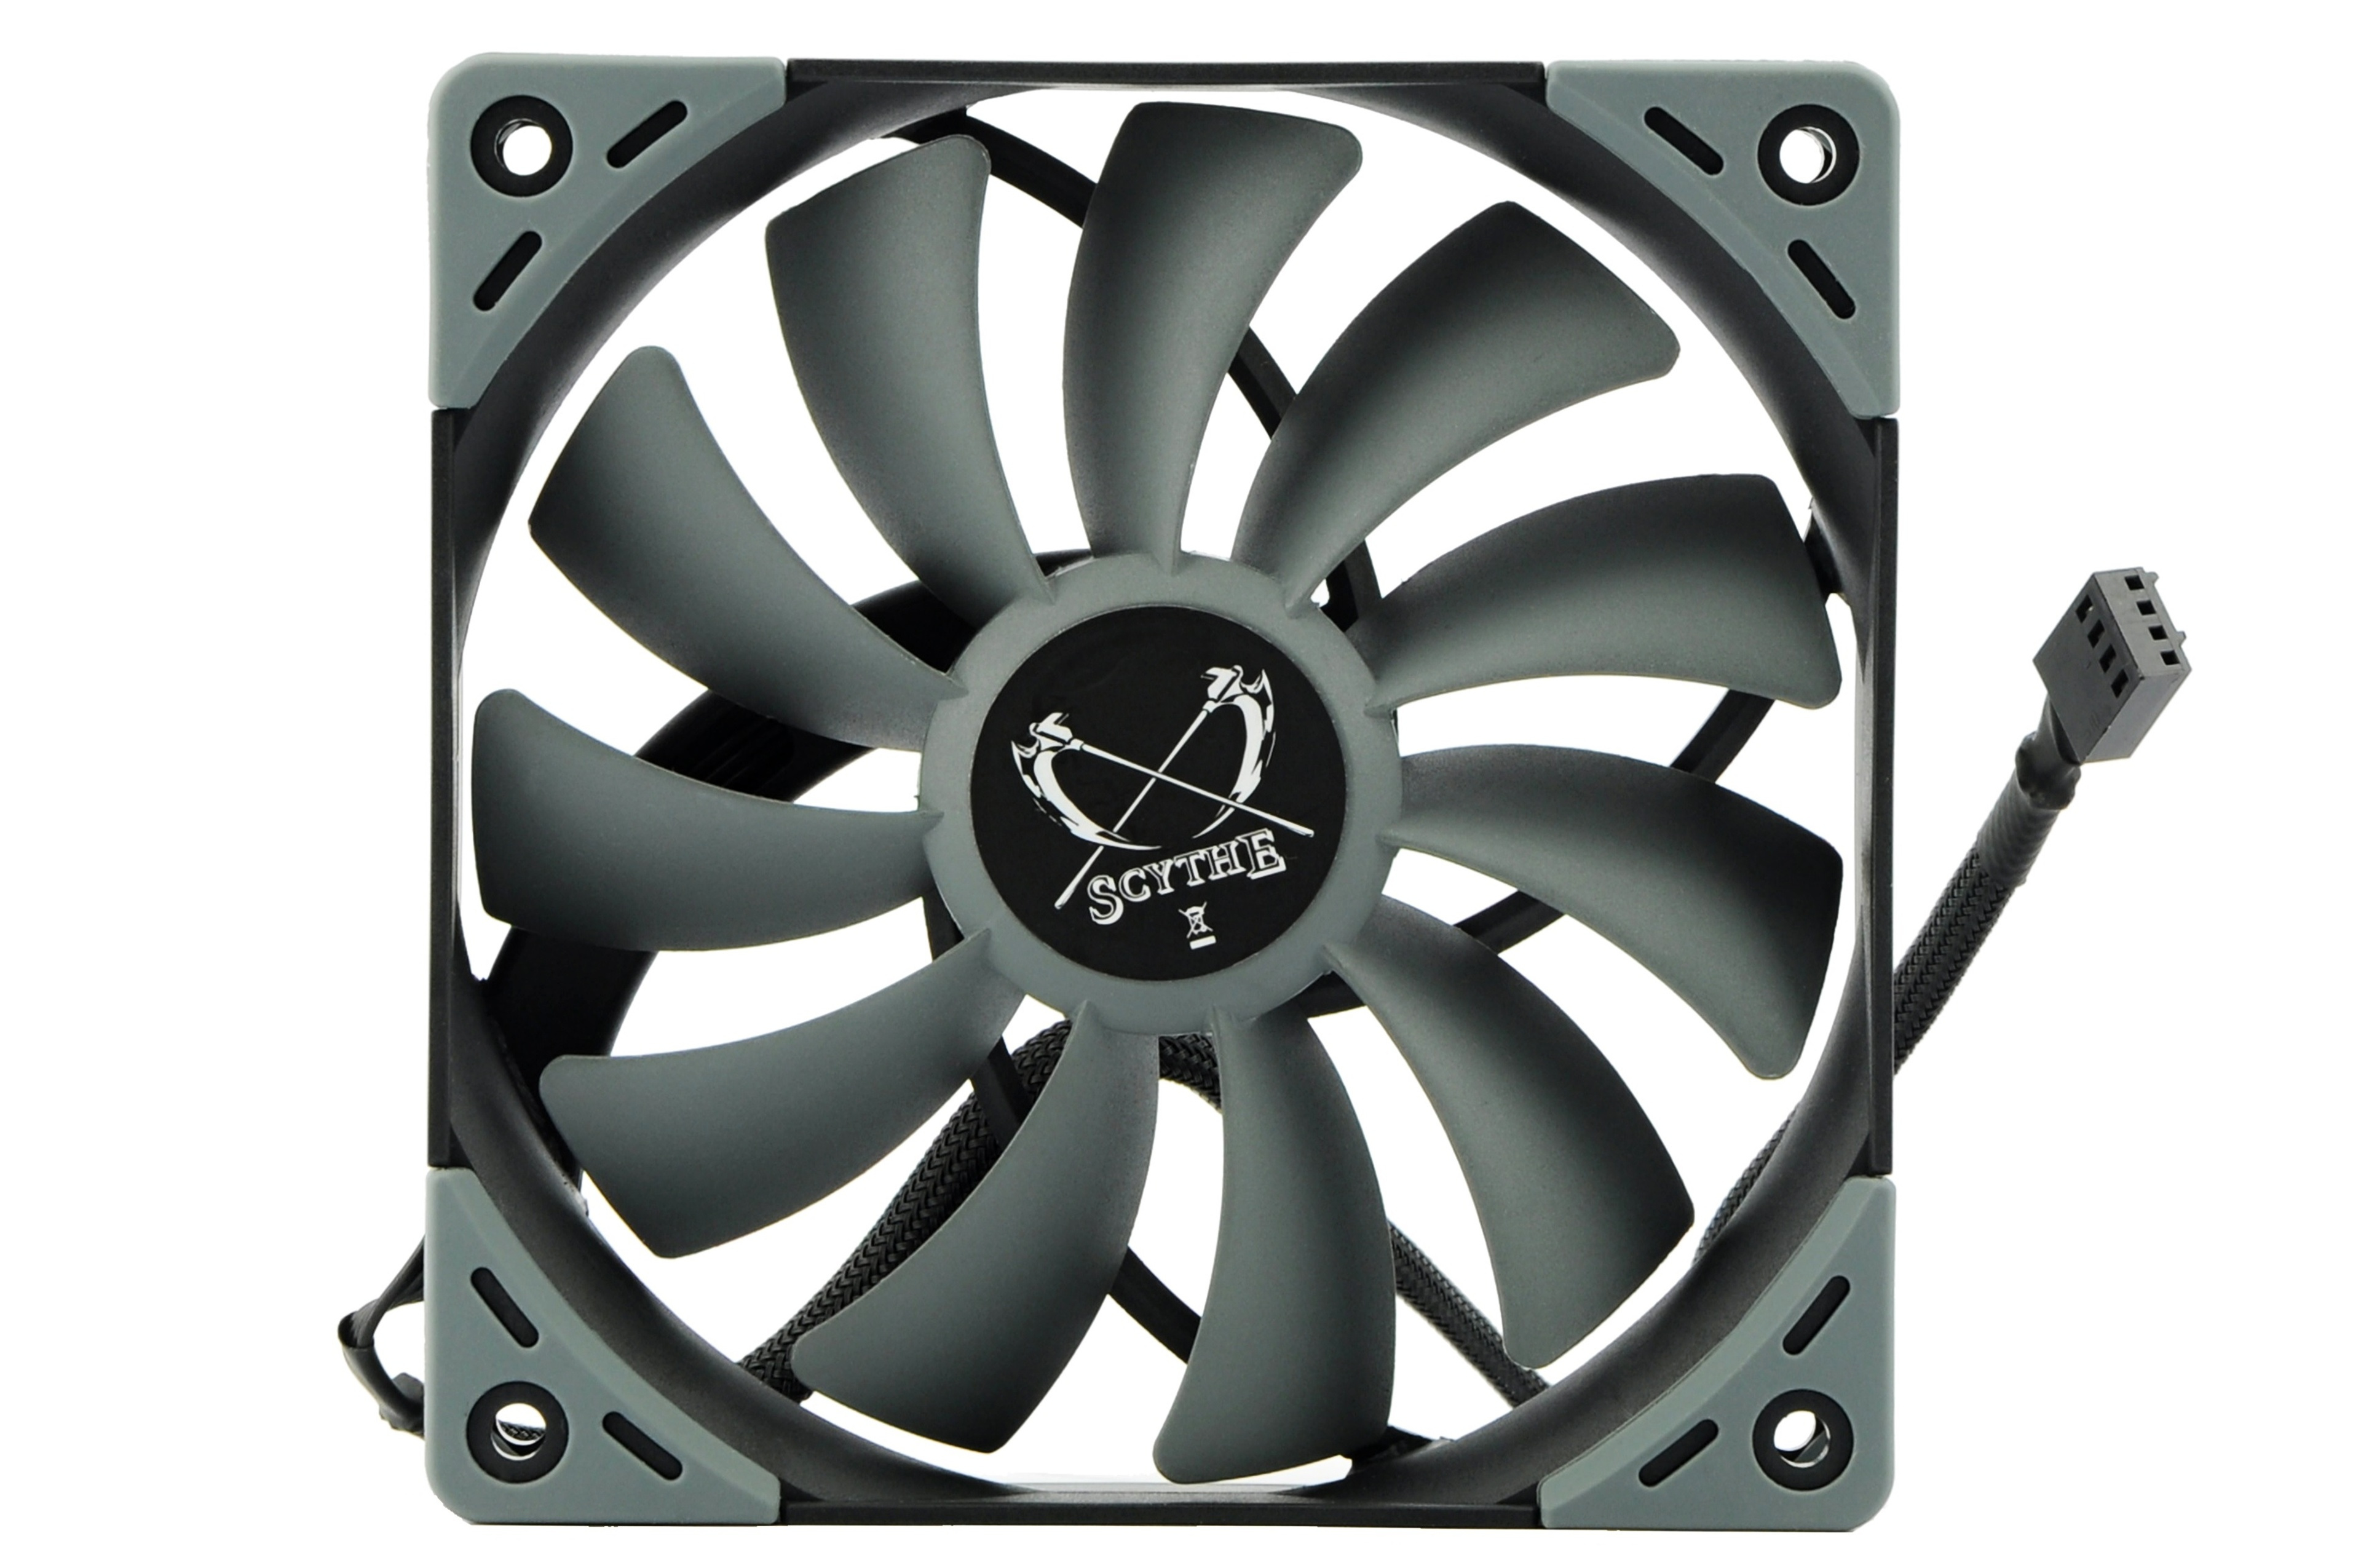 Scythe Ninja 5 Evolution Of The Revolutionary Predecessor Electric Fan Install Page 4 As A Part Installation Kit You Also Get Long Tip Screwdriver That Is Necessary For Heatsink